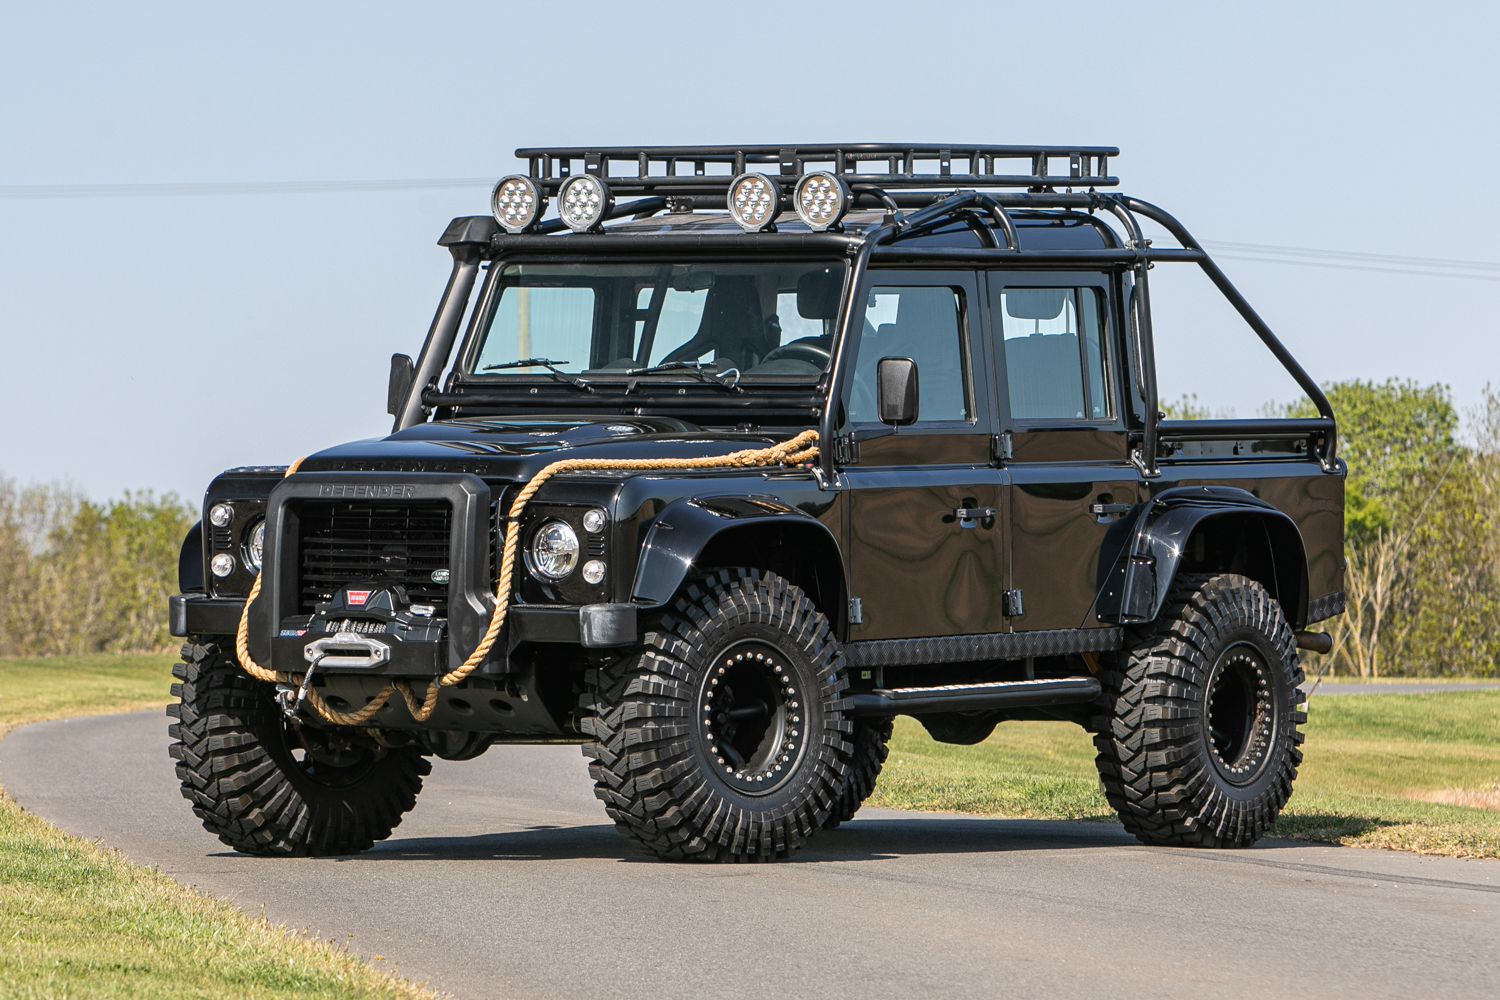 2015 Land Rover Defender 110 SVX 'Spectre' JB24 - Image 8 of 26